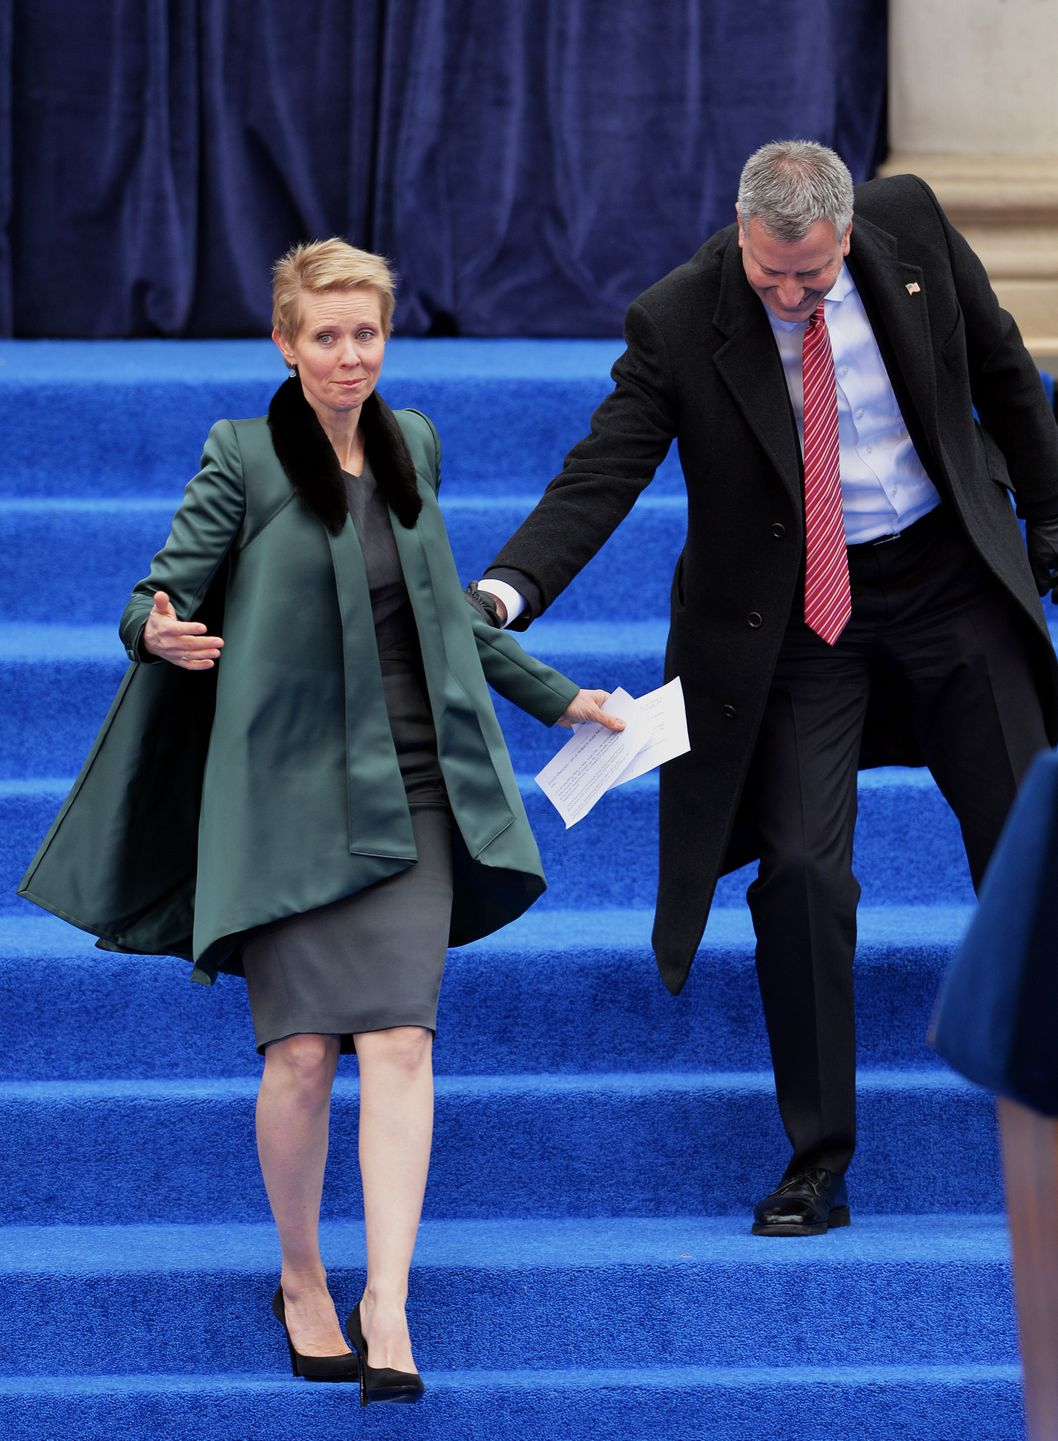 Actress Cynthia Nixon (L) is helped by New York City Mayor Bill de Blasio (R) during the inauguration on the steps of City Hall in Lower Manhattan January 1, 2014 in New Yorks. AFP PHOTO/Stan HONDA        (Photo credit should read STAN HONDA/AFP/Getty Images)